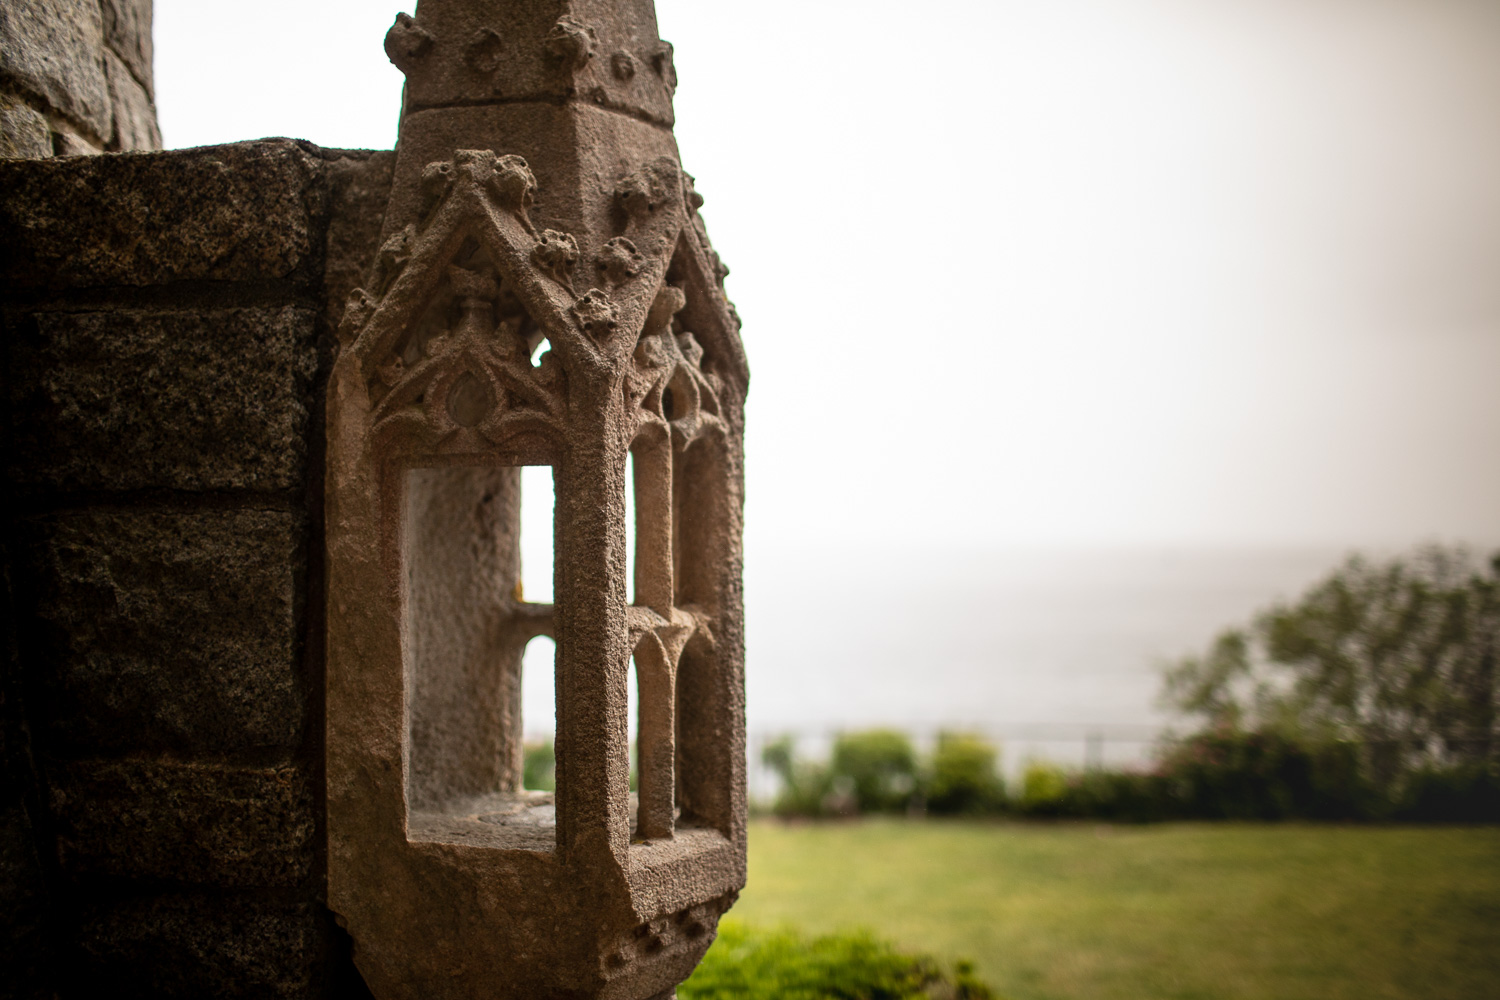 An architectural element on the exterior of the Hammond Castle.